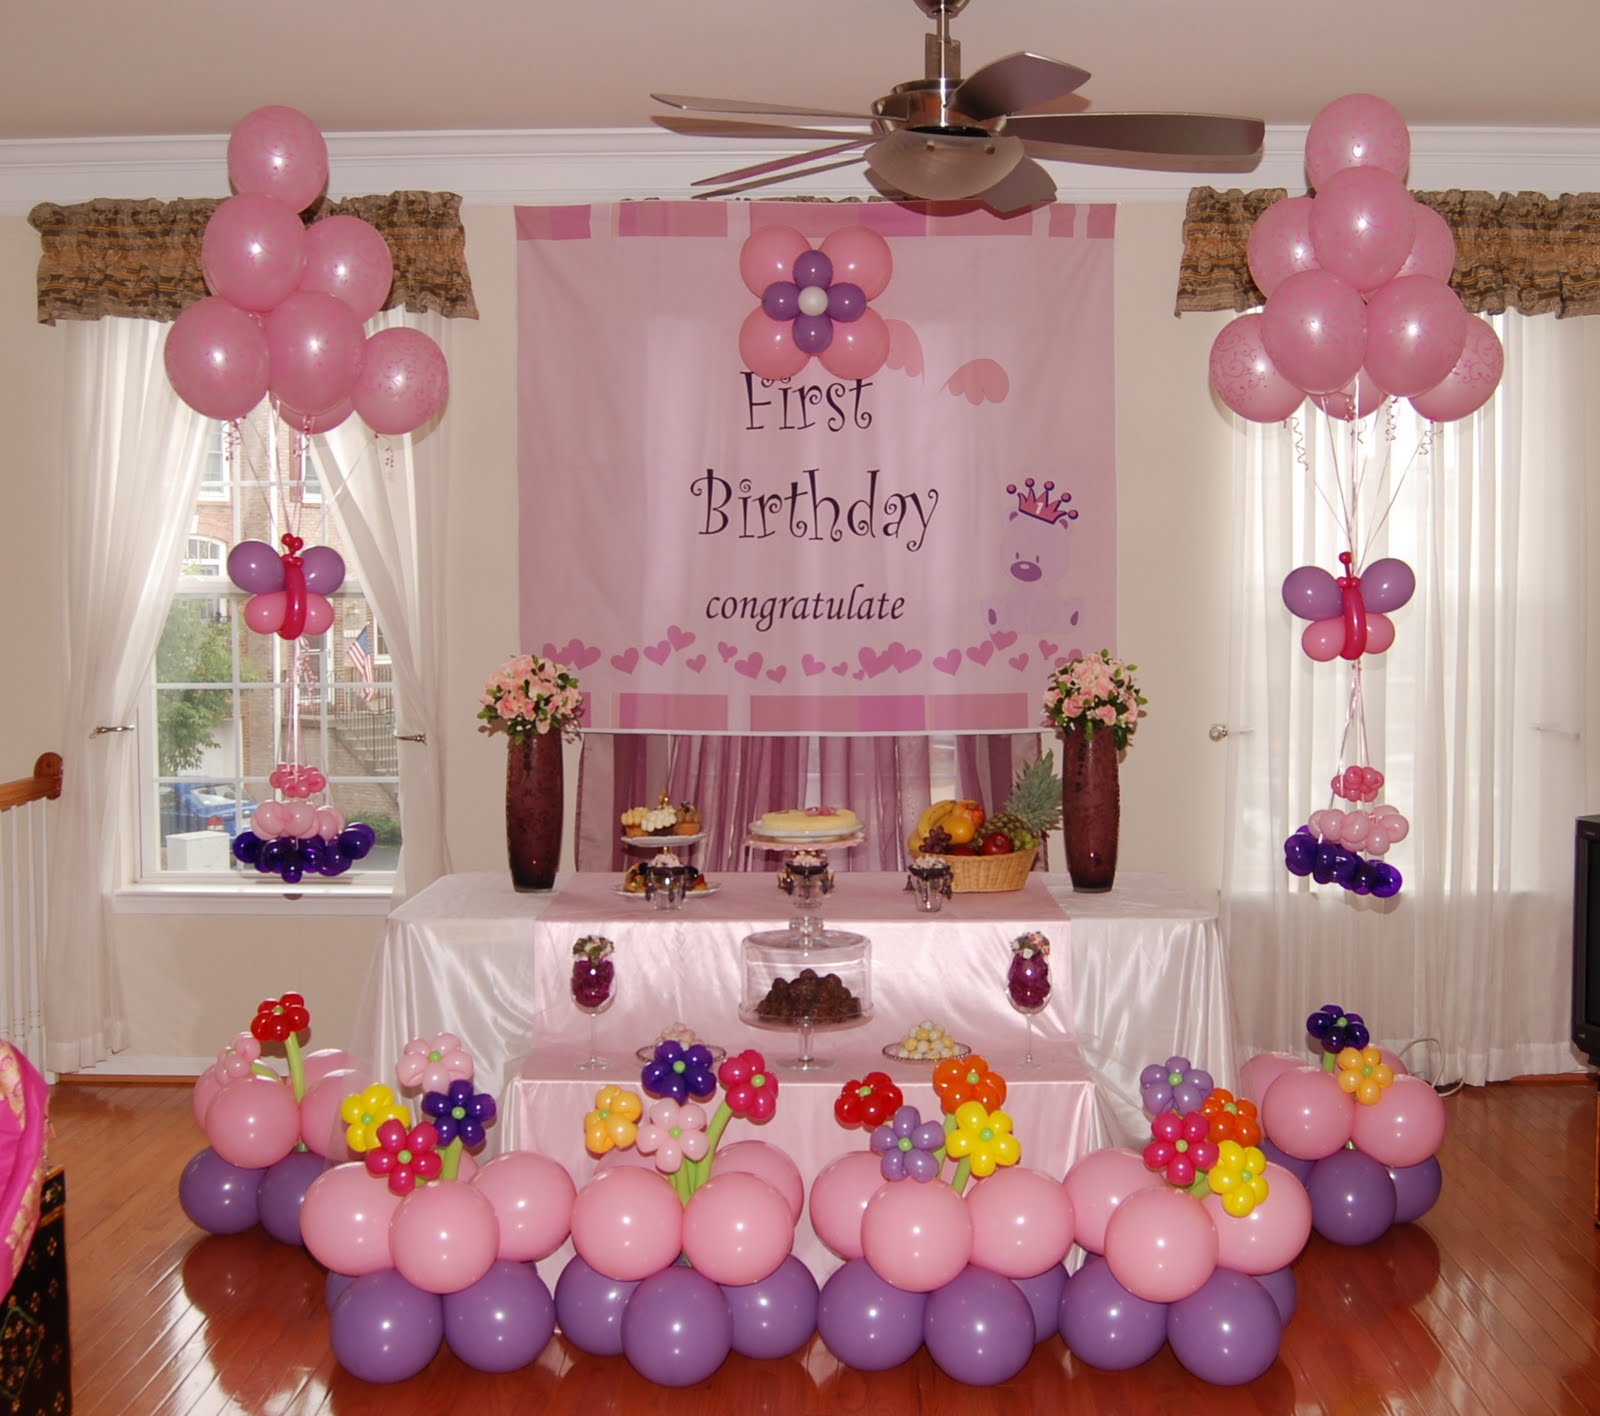 How to create a birthday party checklist great party ideas for 1st birthday girl decoration